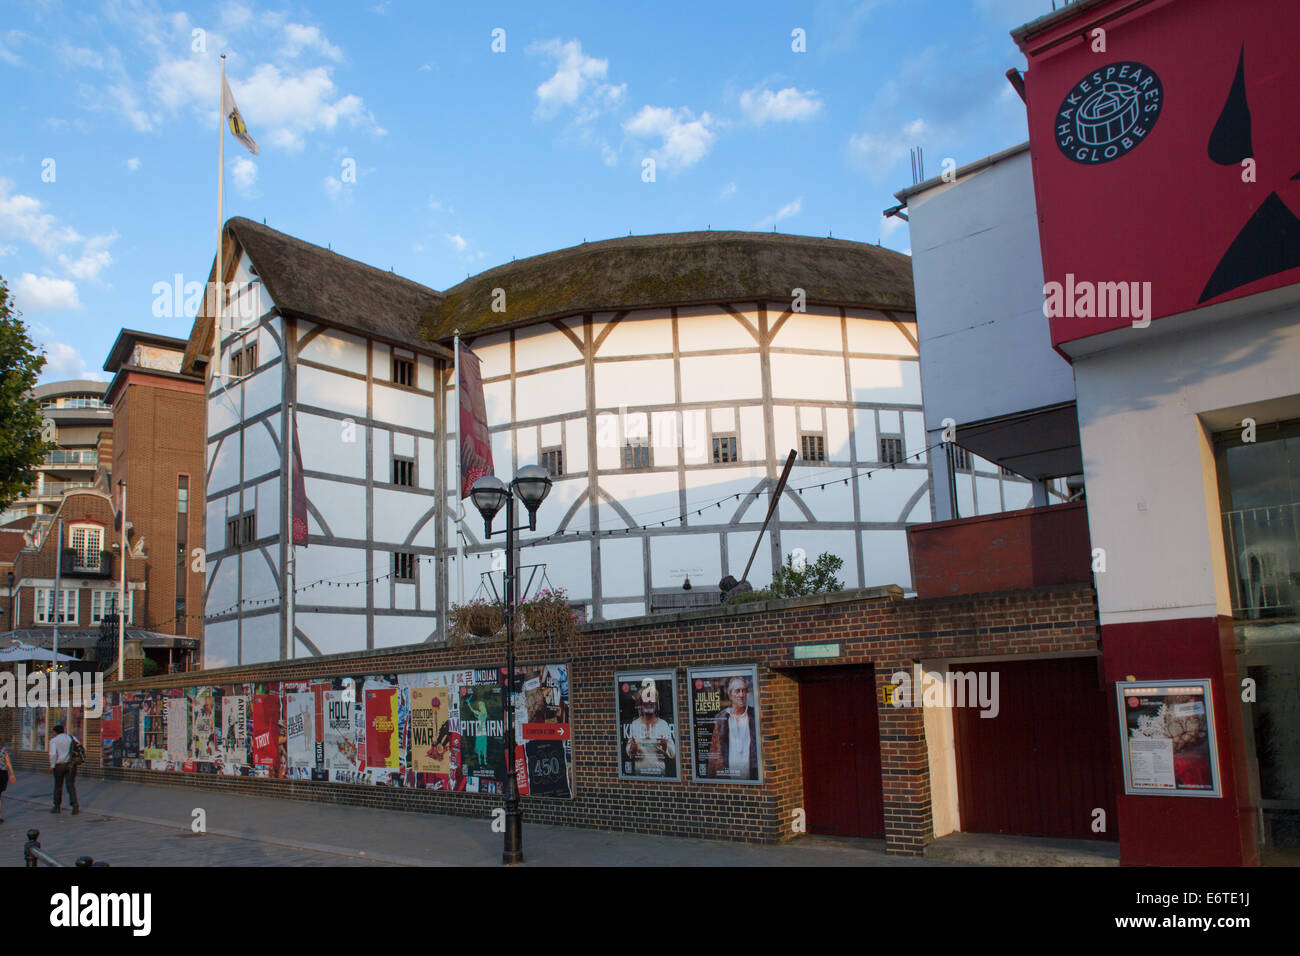 Shakespeare's Globe Theater - Stock Image